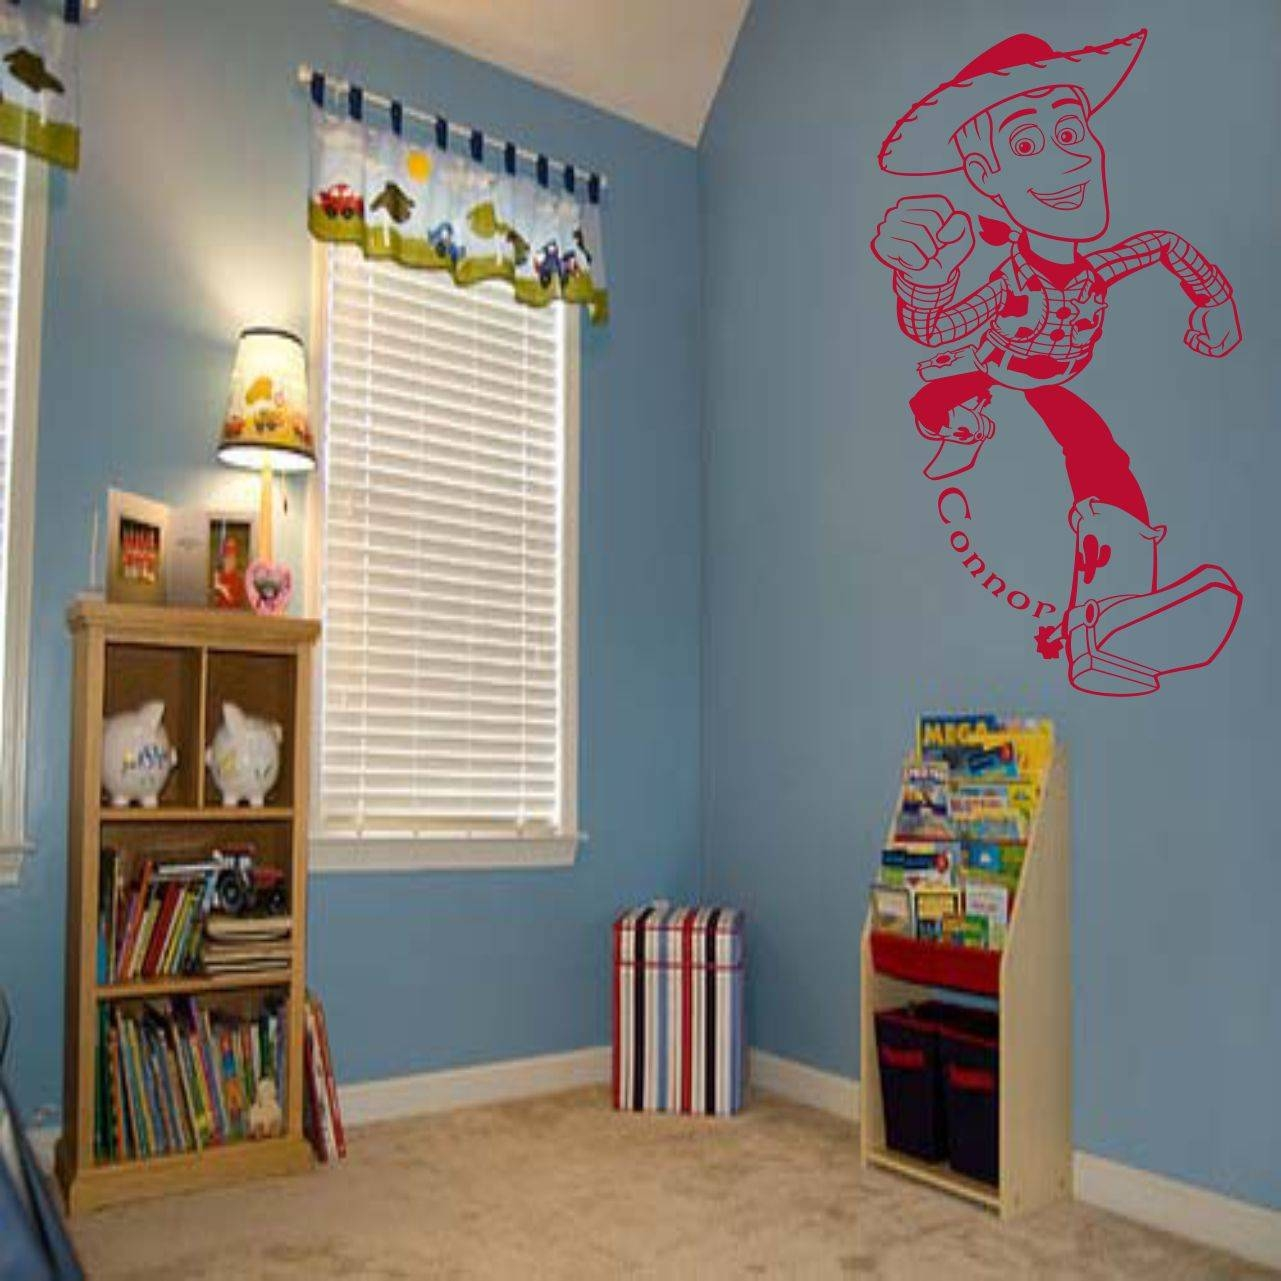 Fantastic Toy Story Woody Wall Art Decal Vinyl Sticker Wall Throughout 2017 Toy Story Wall Stickers (View 6 of 25)